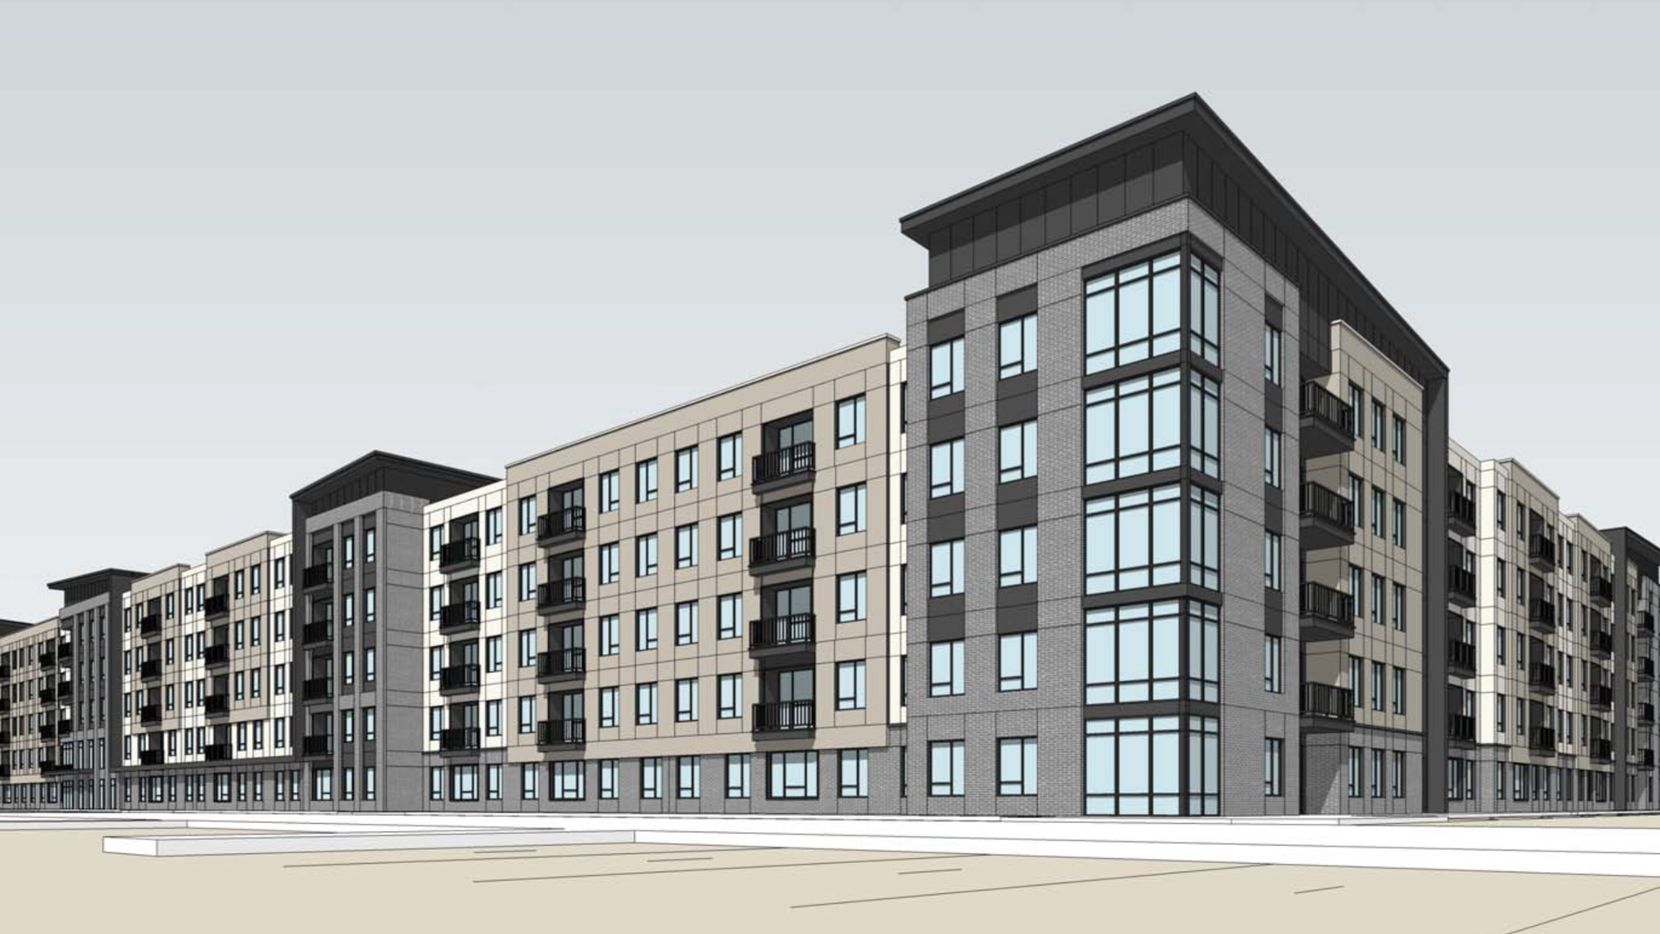 AltaTerra Real Estate wants to build a five-story student housing building on the south side of Bush Turnpike.